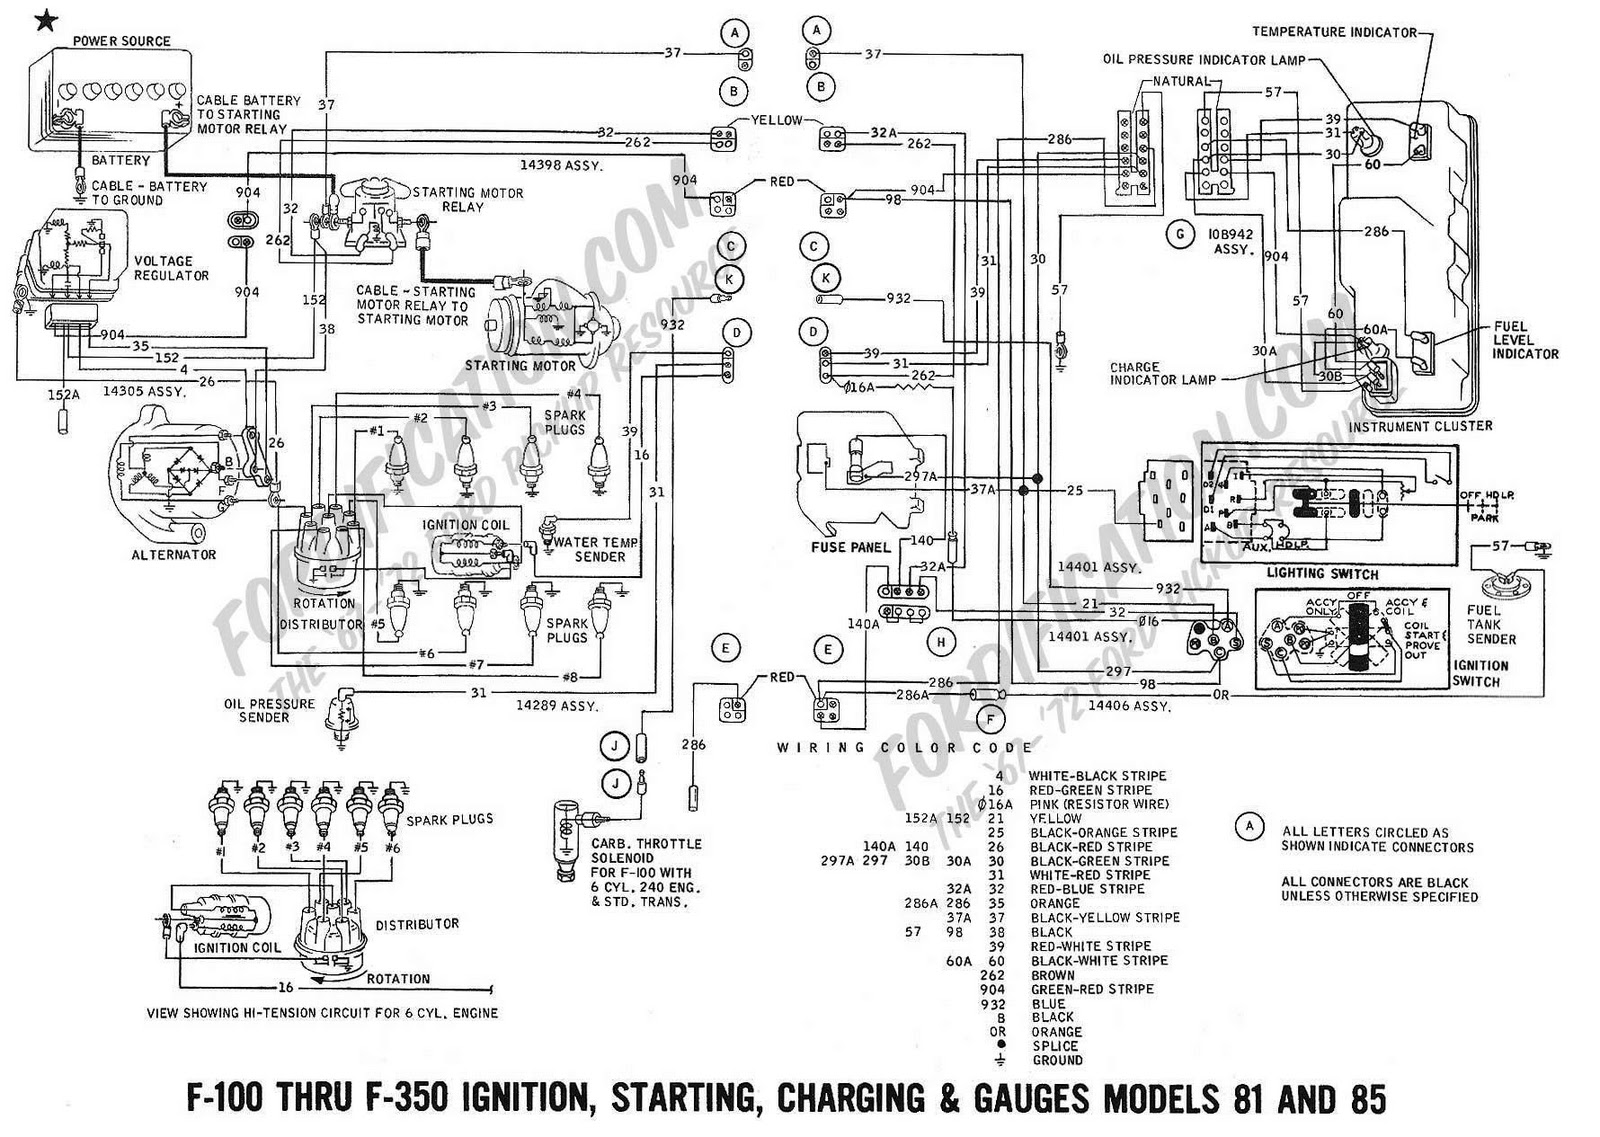 Ford Galaxie Cluster Wiring Diagram Auto Electrical Wiring Diagram Ford  Wiring Diagrams F150 Ford Wiring Diagram